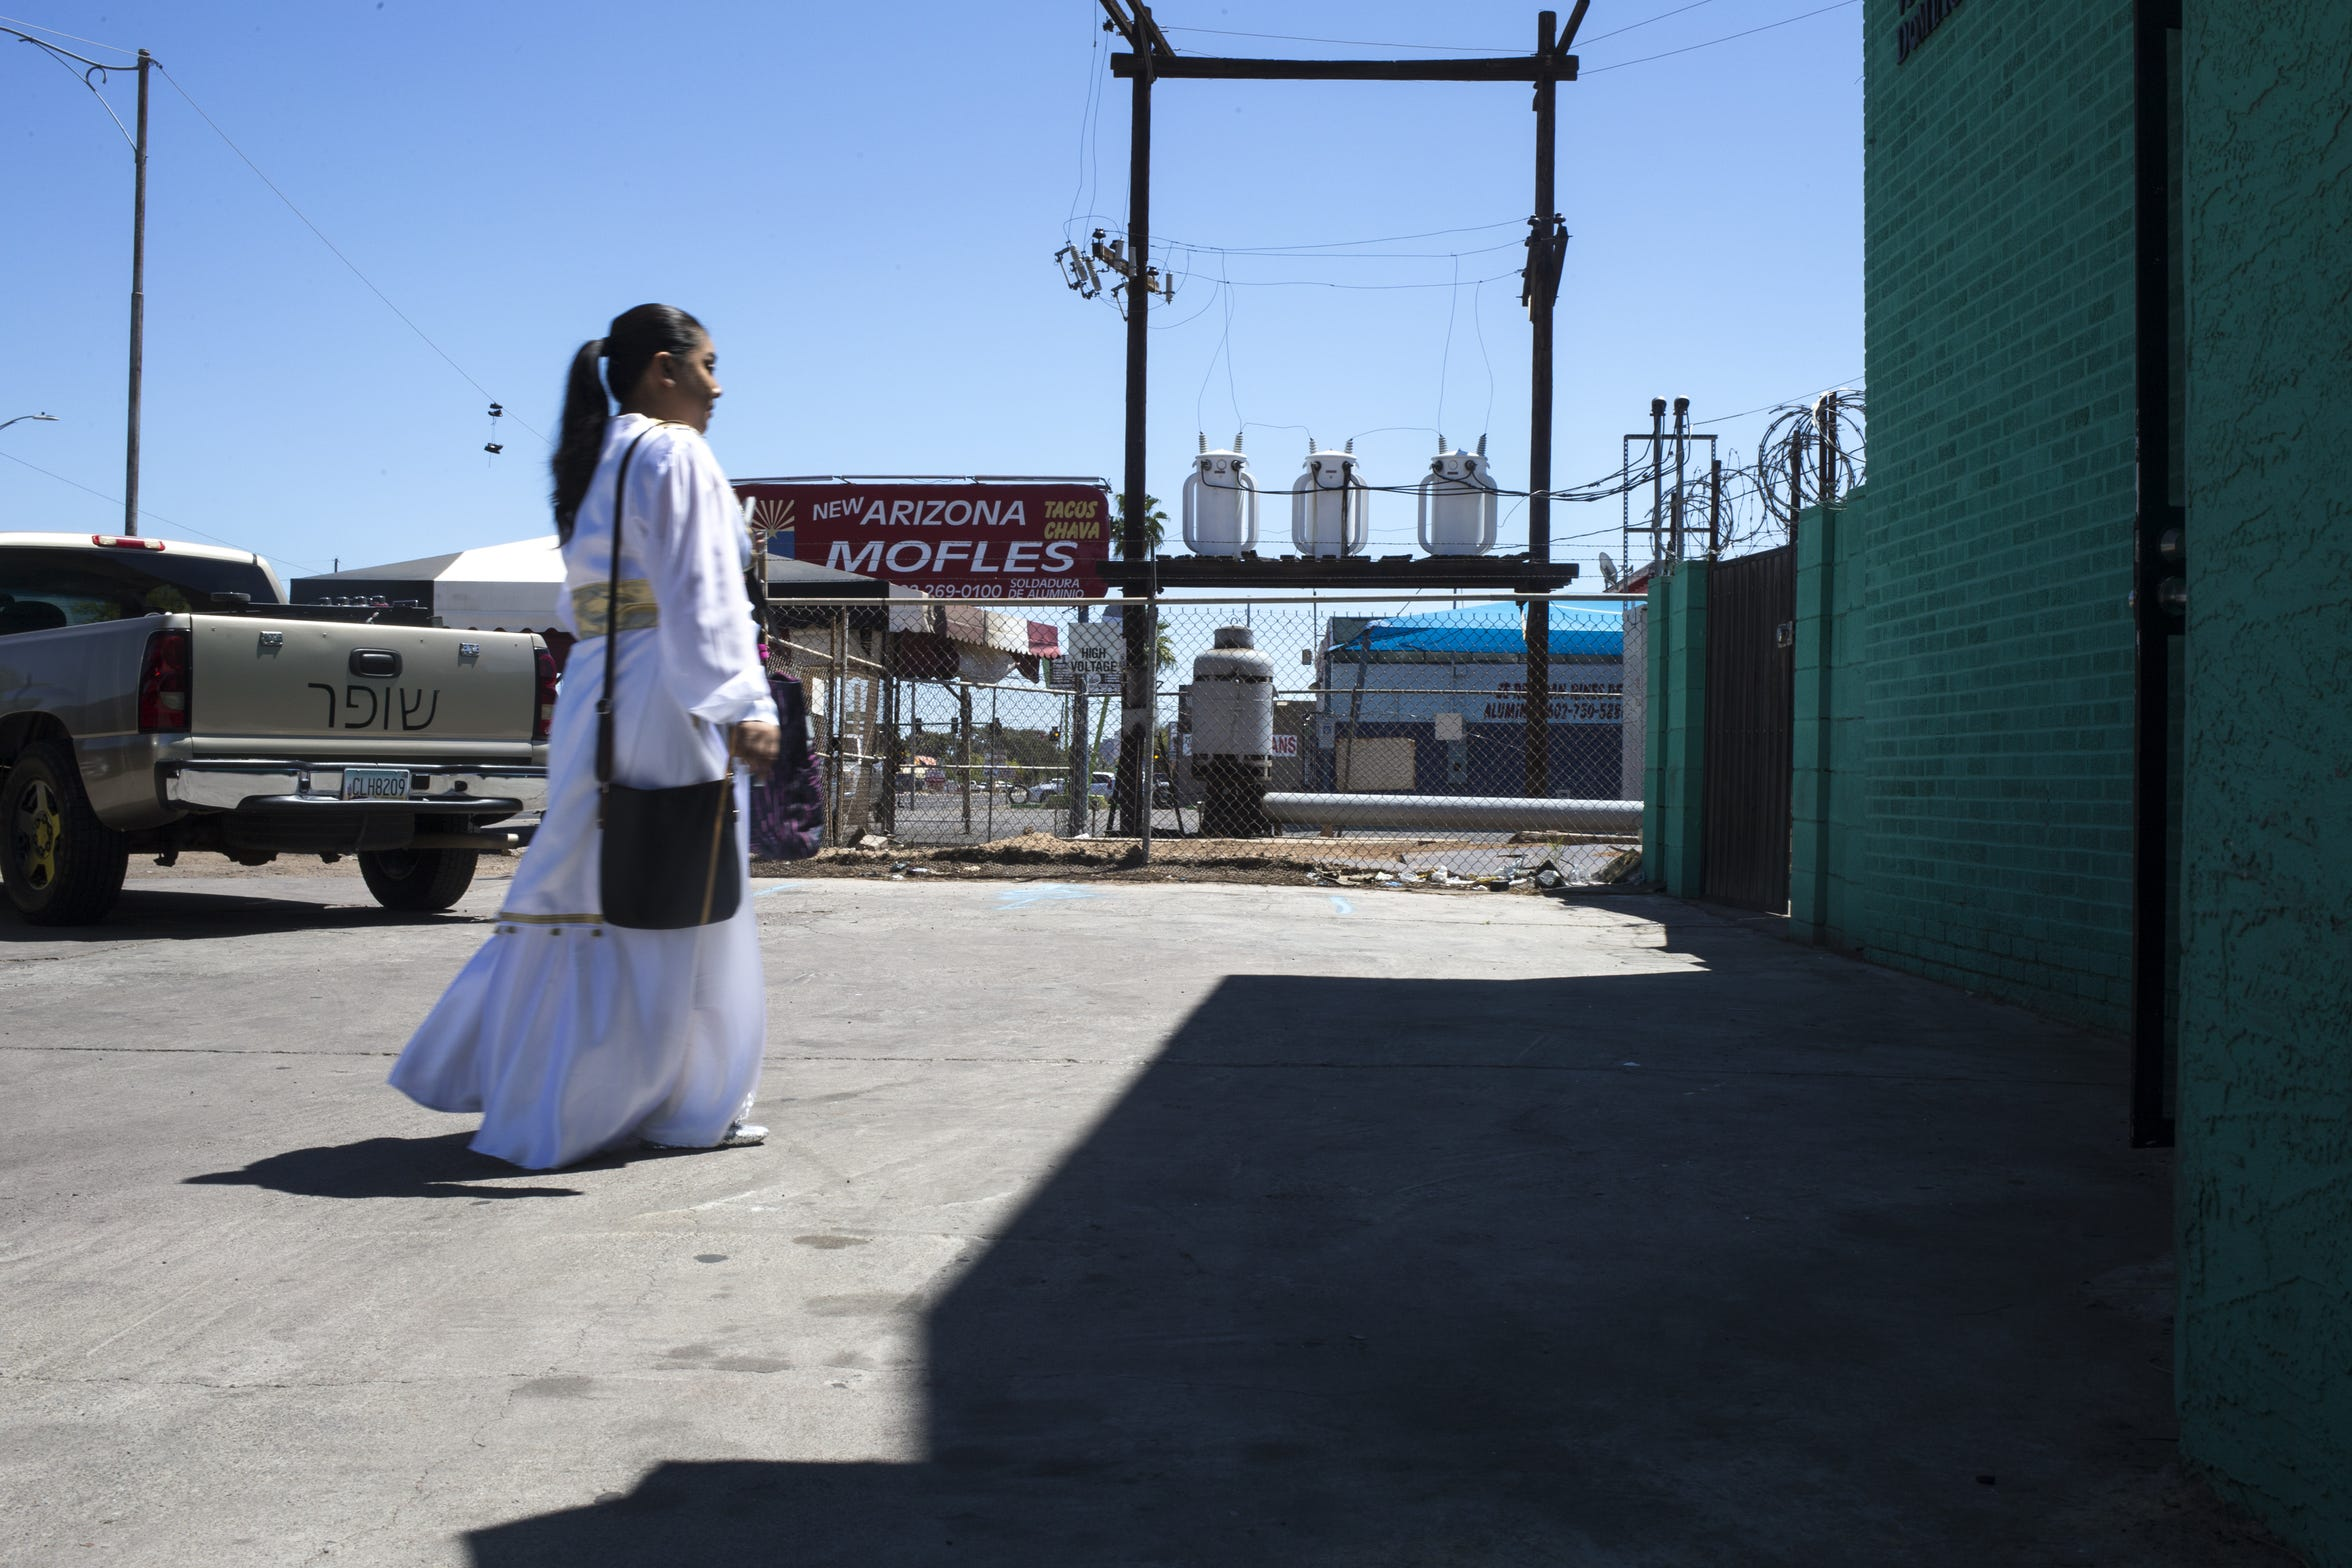 A worshiper enters Templo Agua Viva church for Easter services on April 21, 2019. A well stands in the background next to West Van Buren Street.